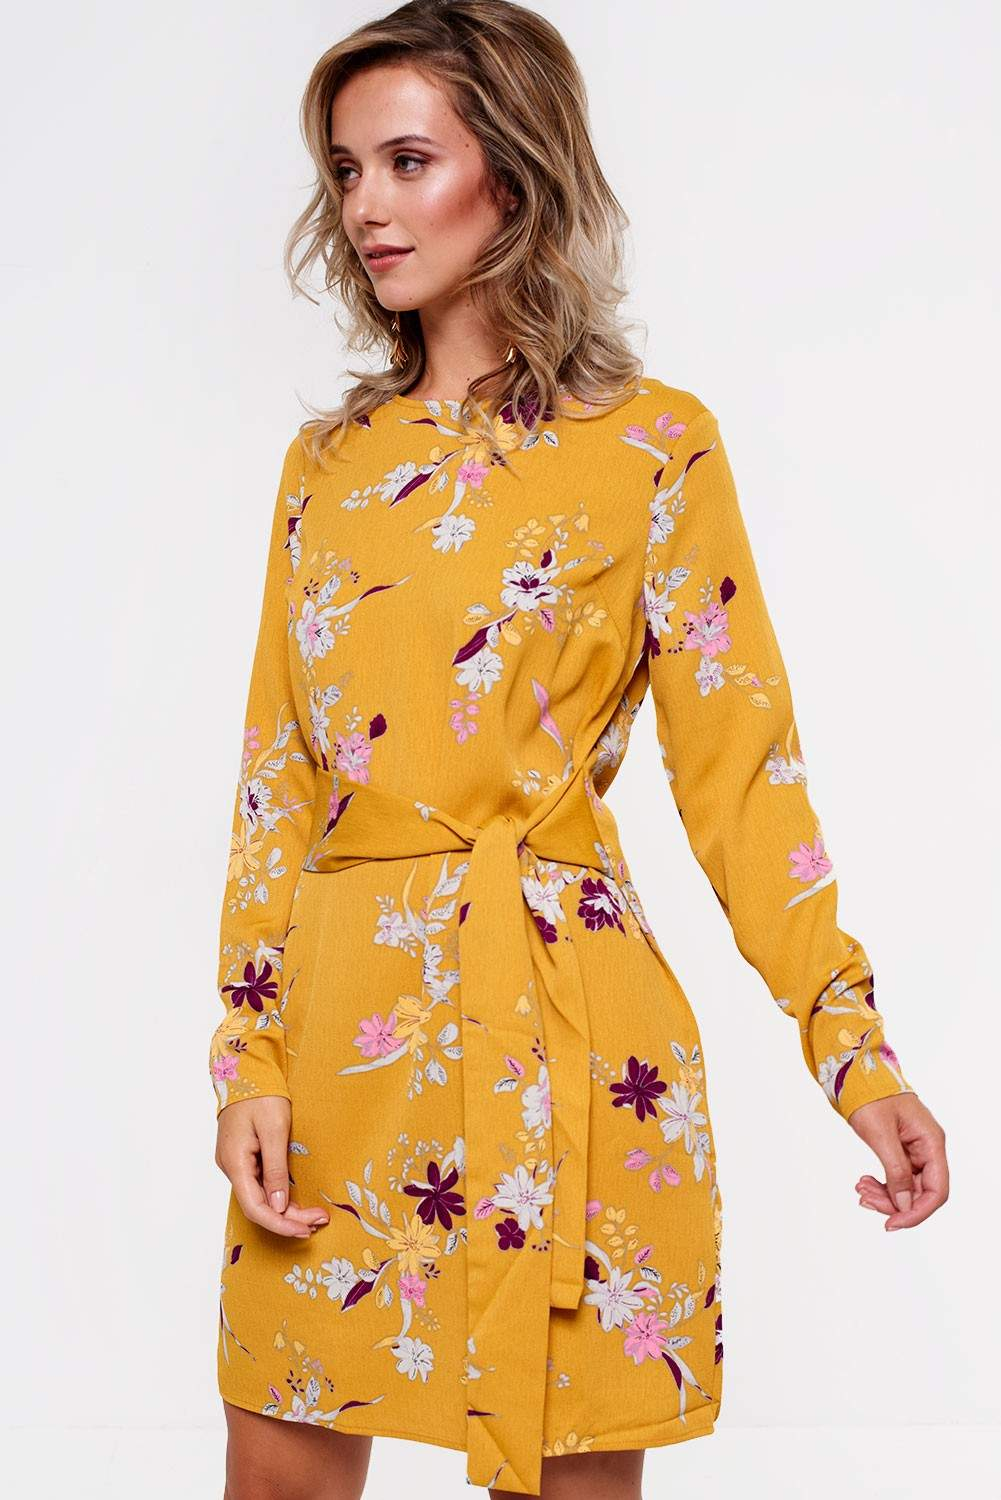 d4a77a7988c Pieces Gail Long Sleeve Dress in Mustard Floral Print